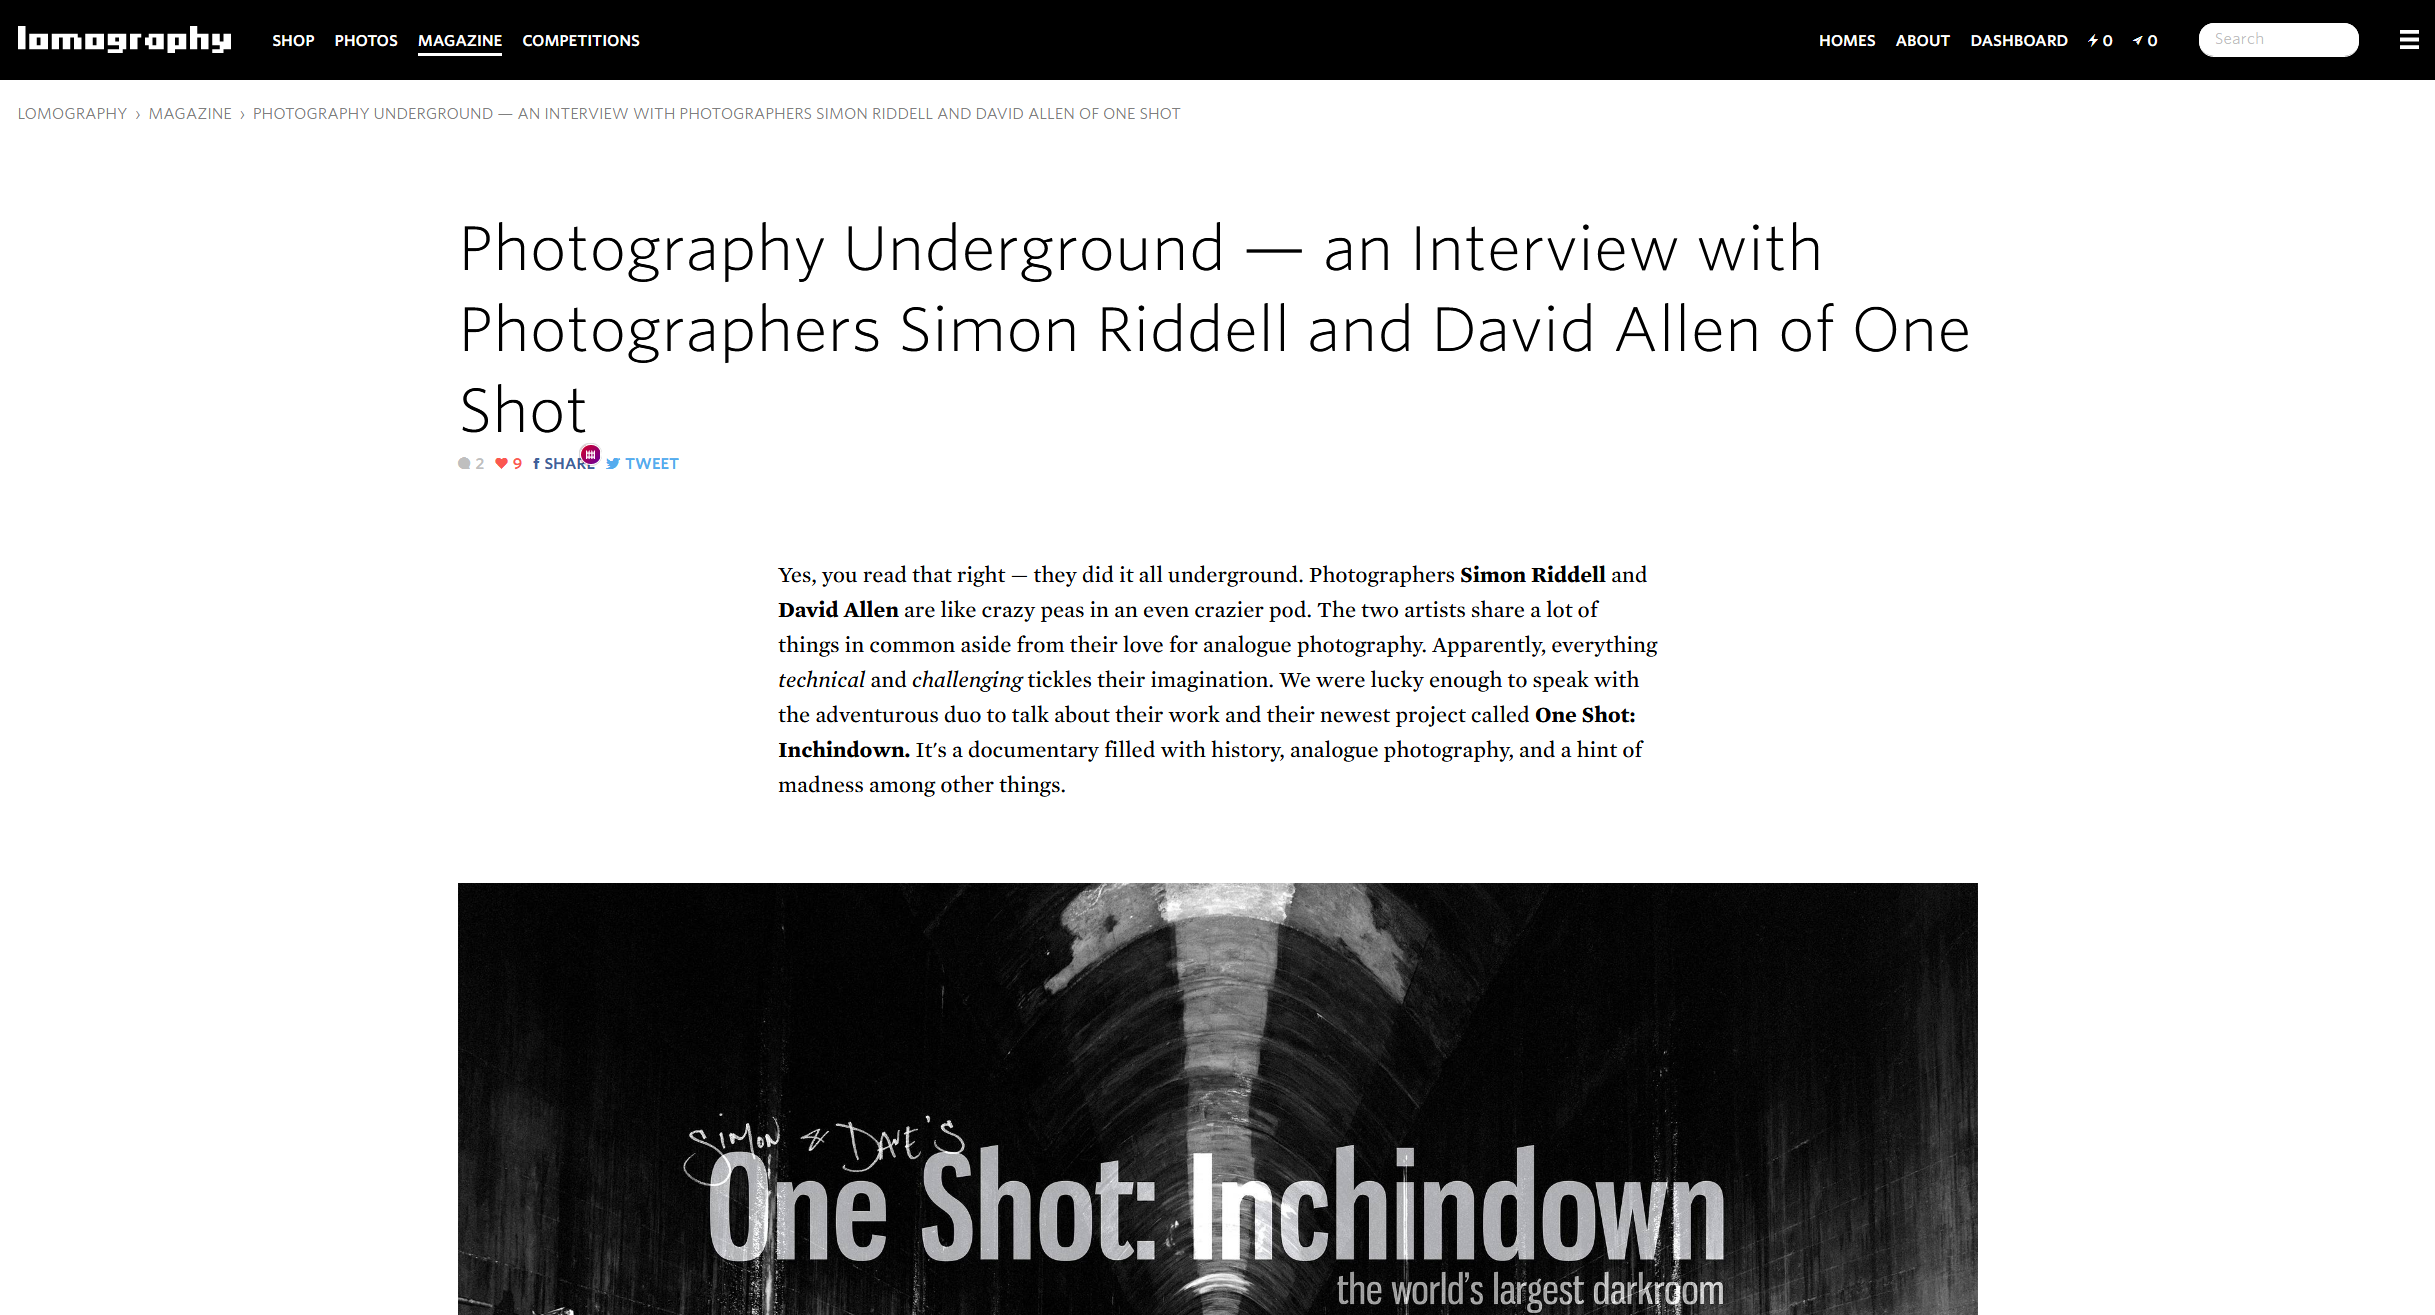 Lomography - Photography Underground — an Interview with Photographers Simon Riddell and David Allen